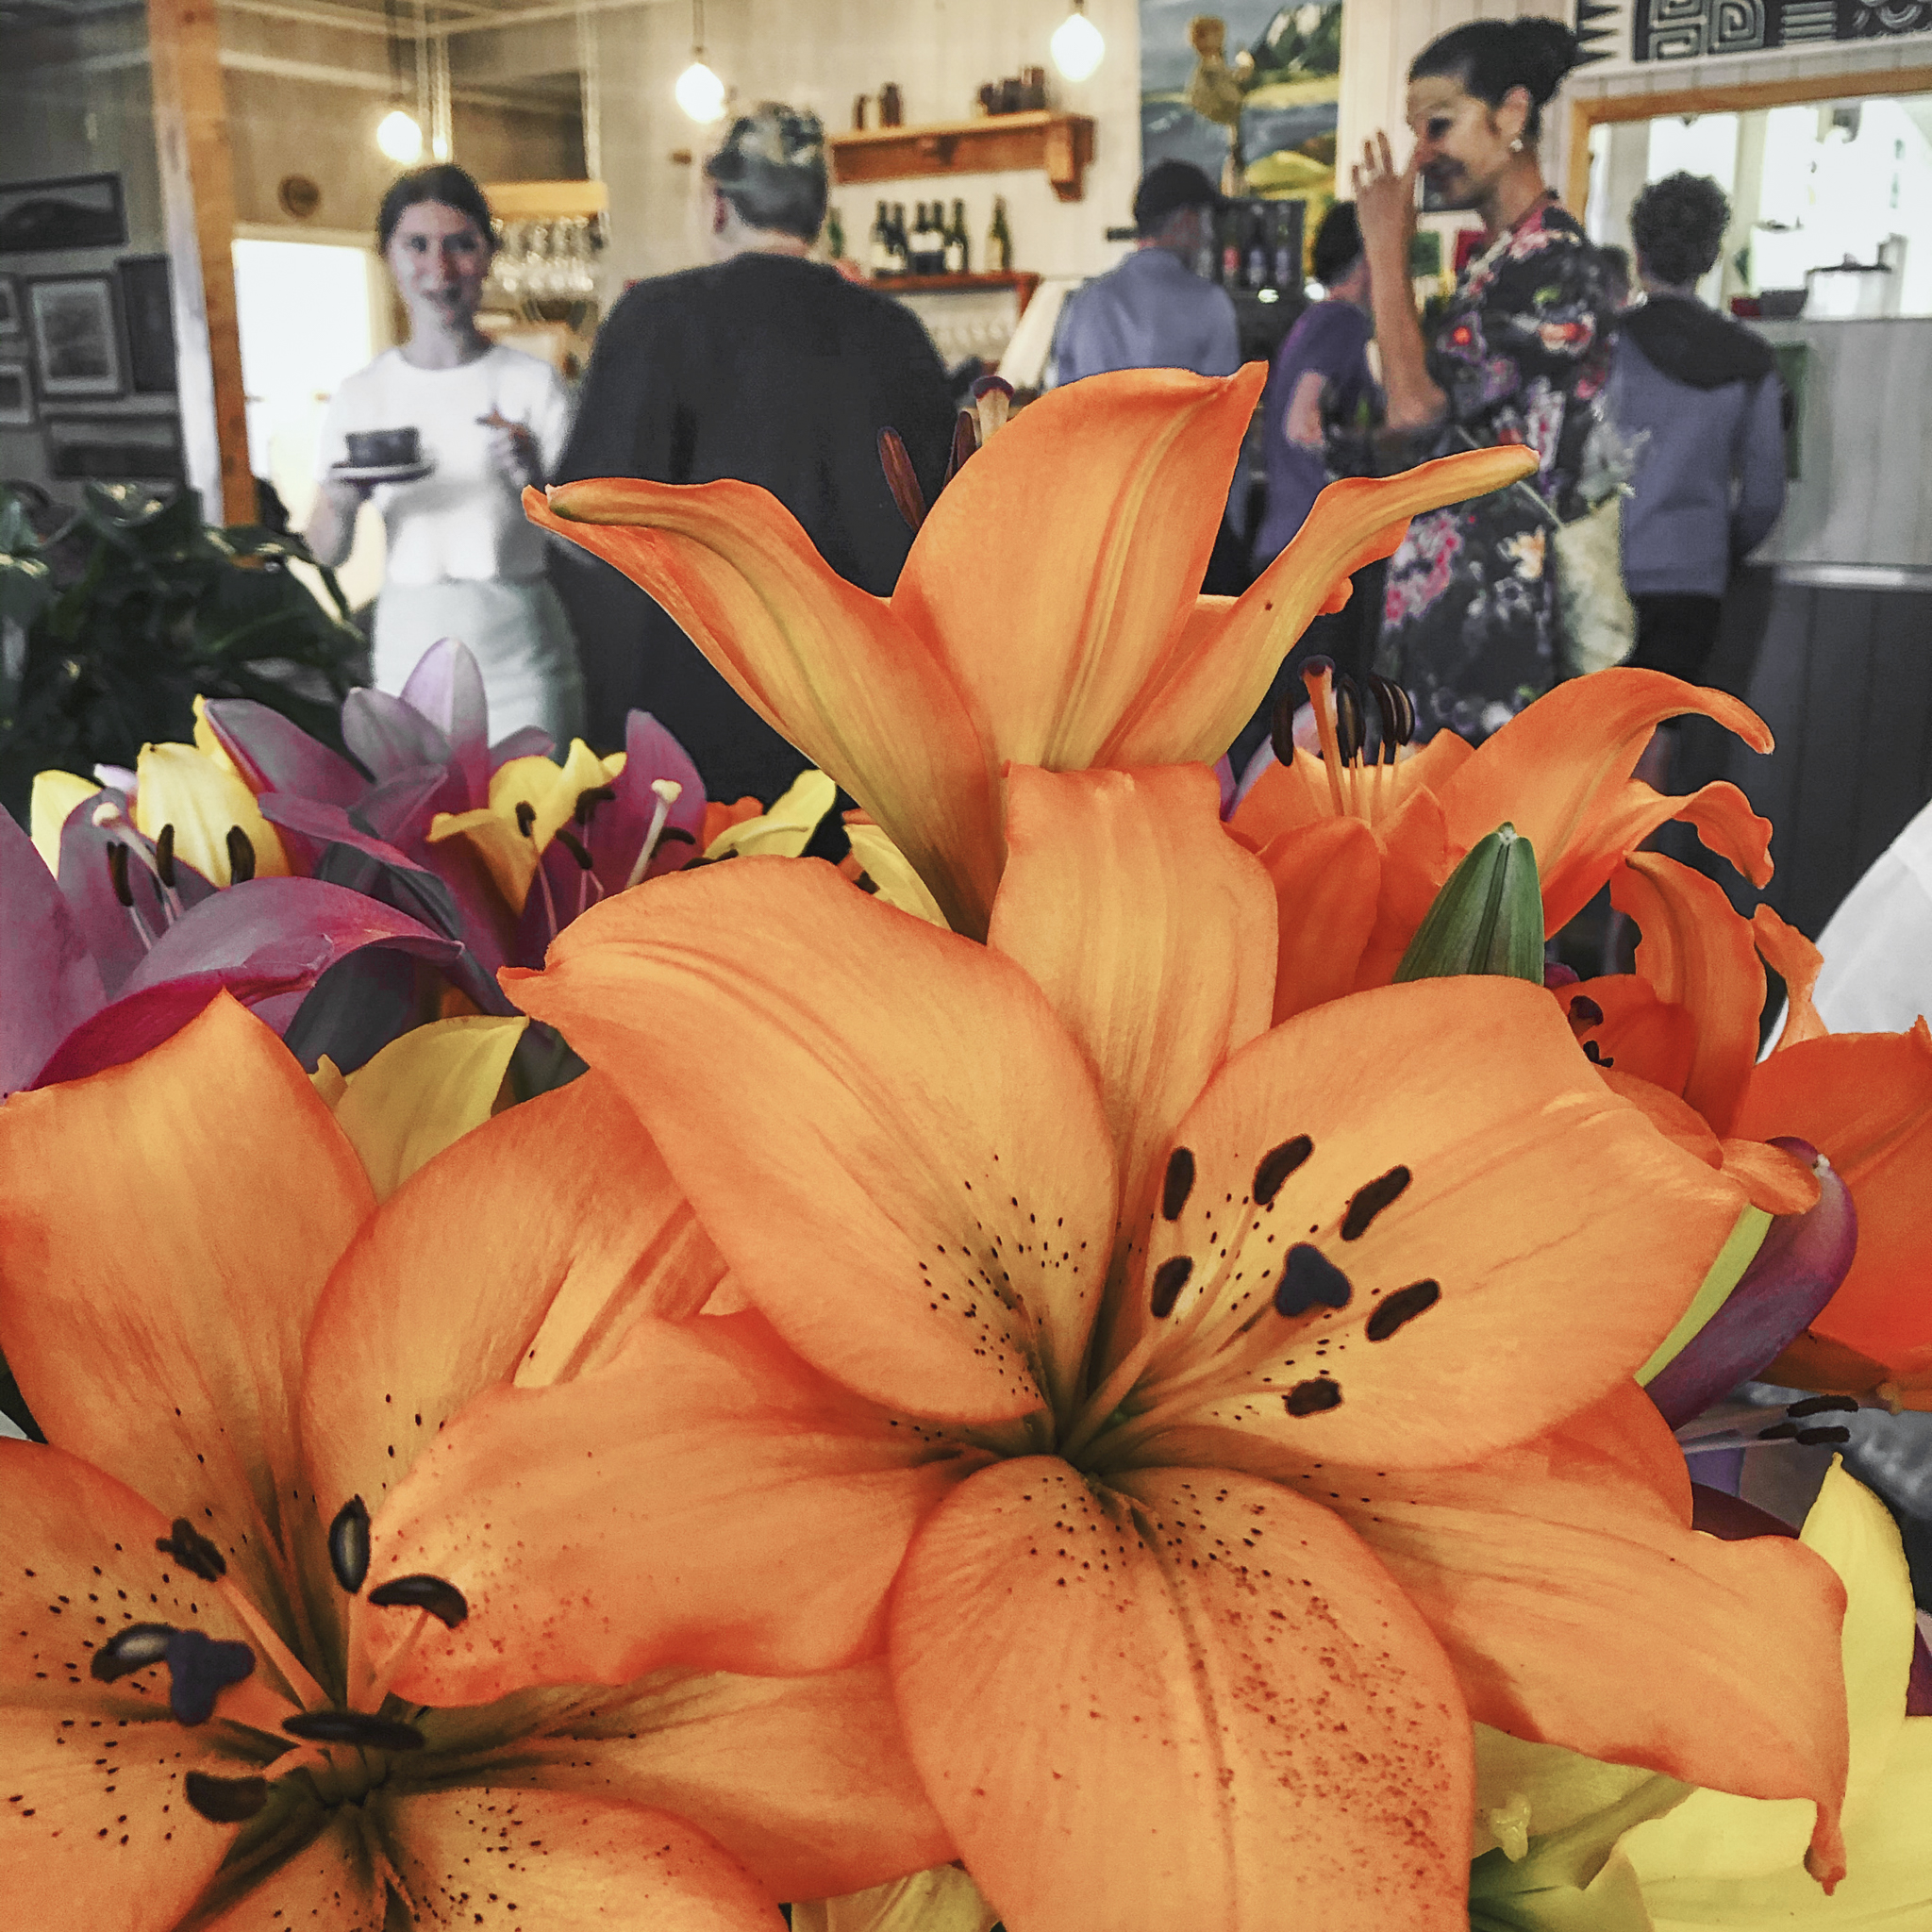 Flowers inside the cafe